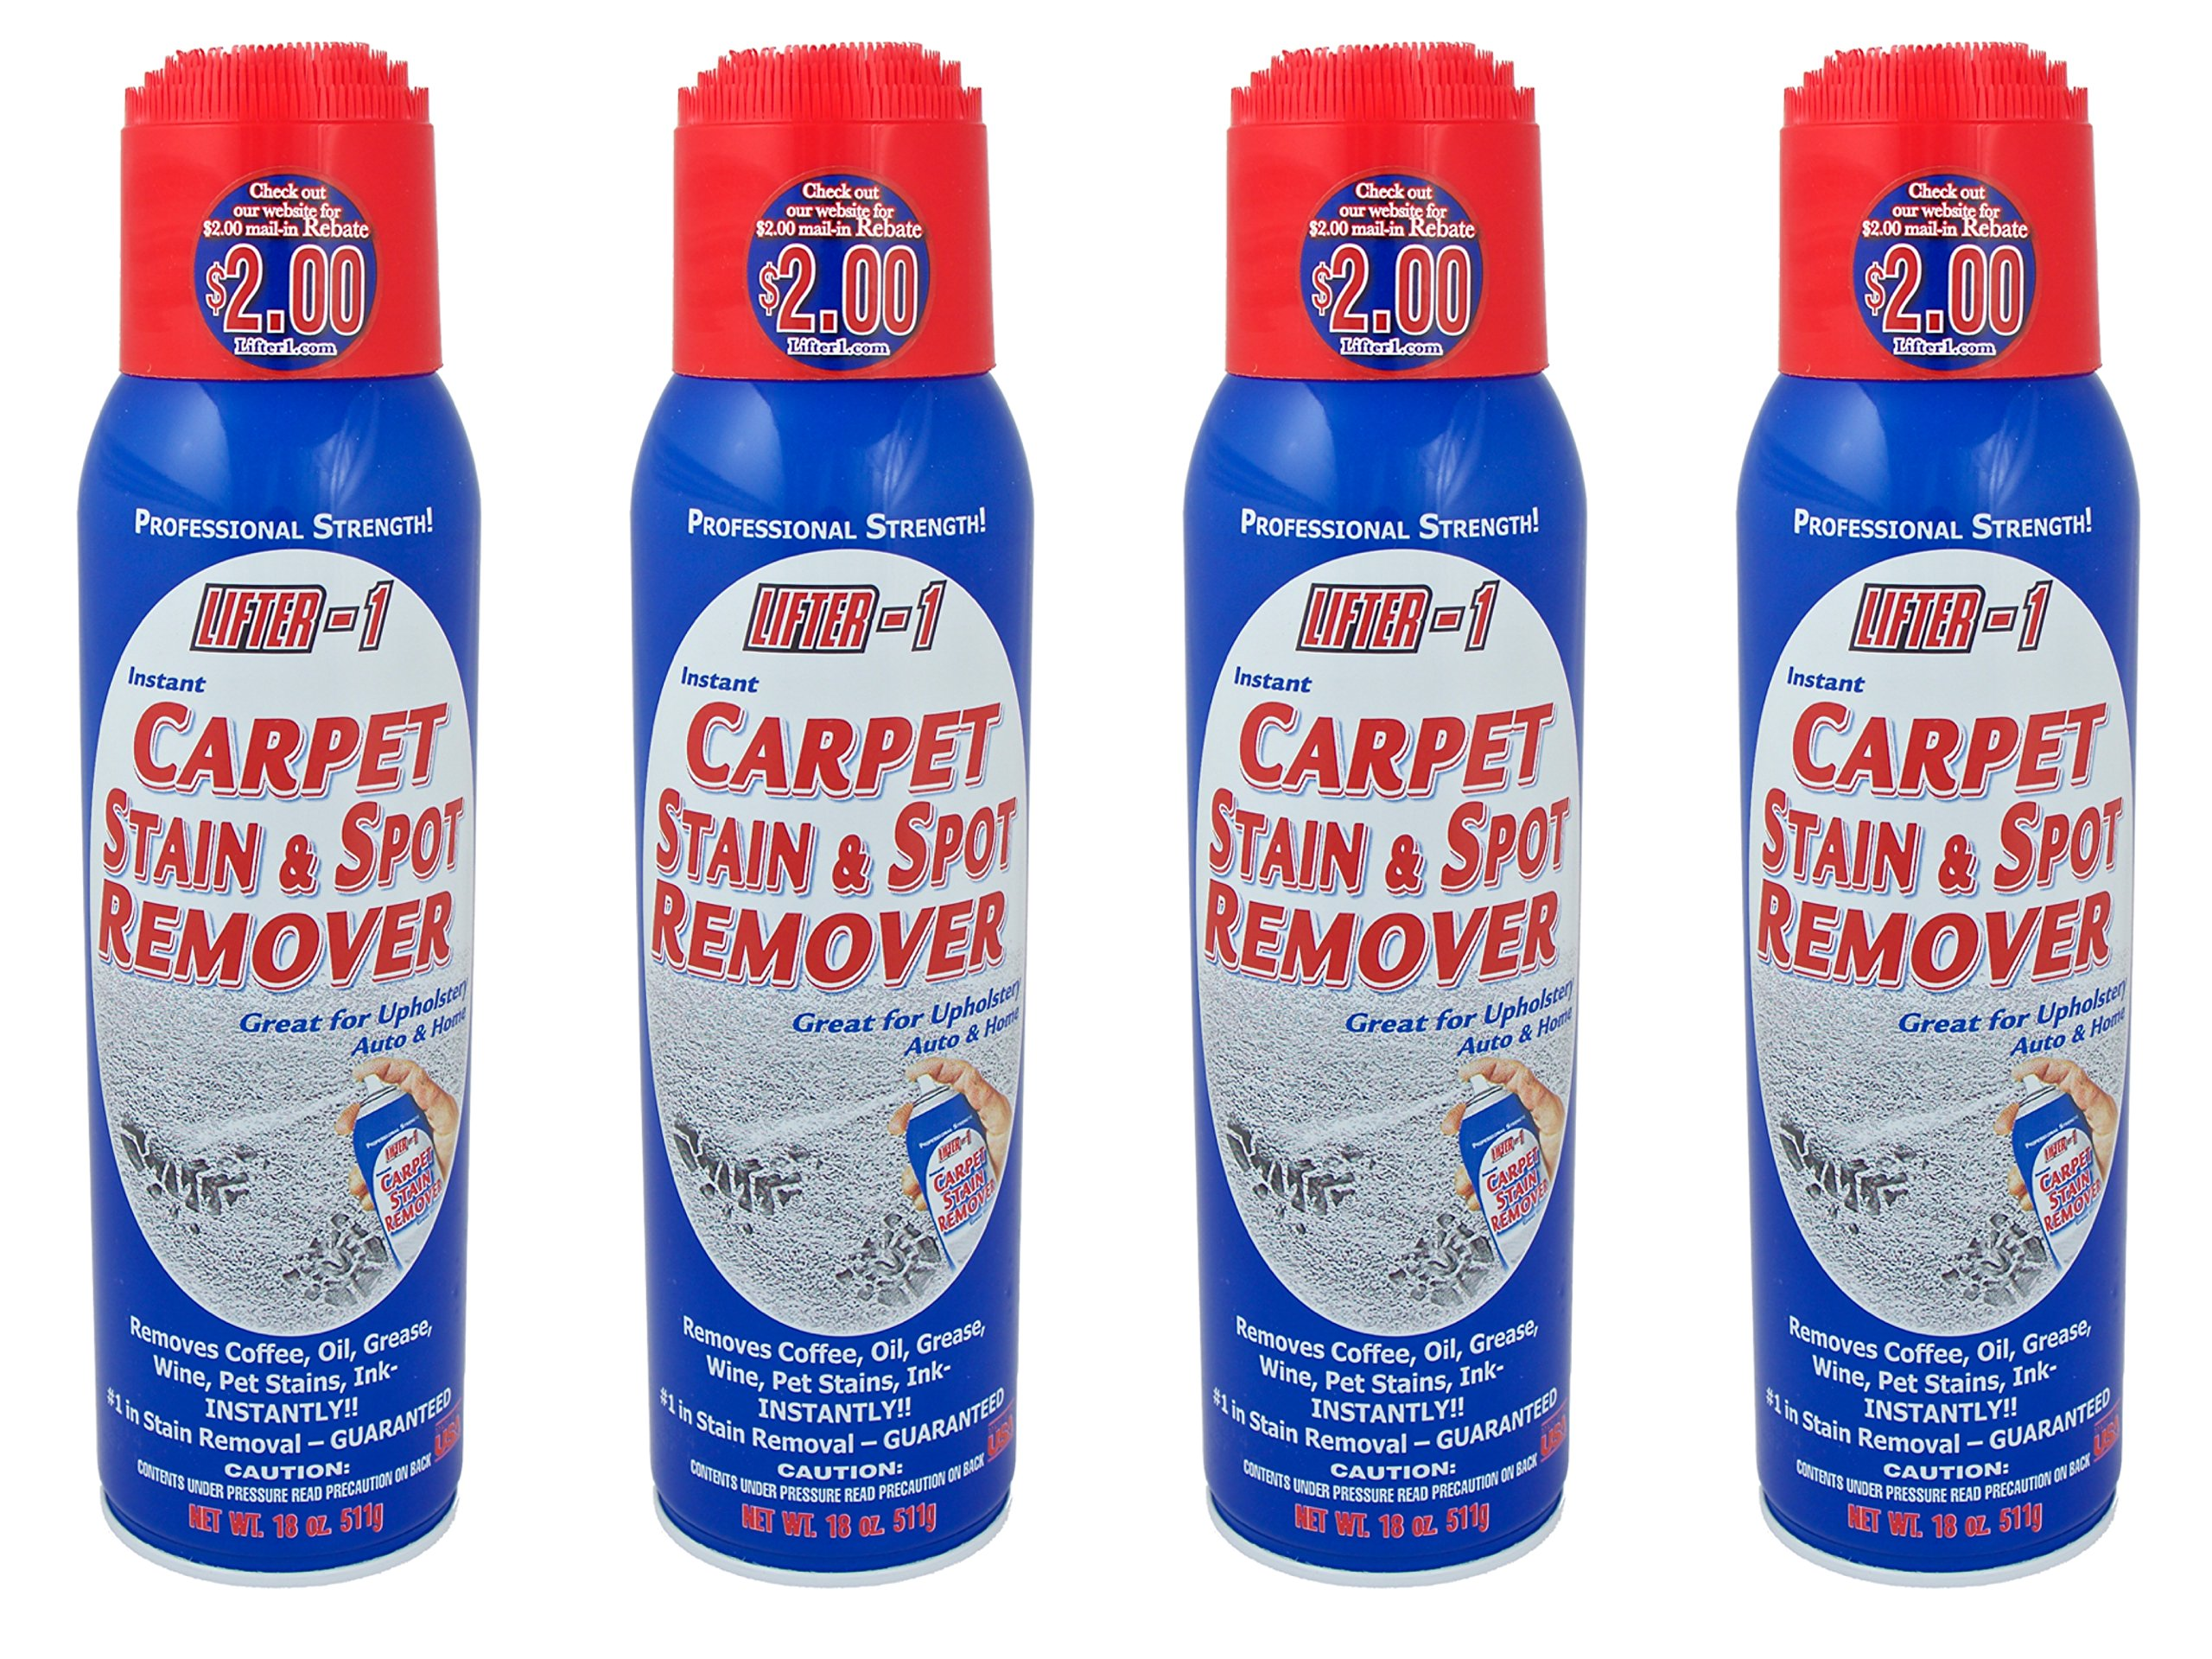 18 Oz. Lifter 1 Carpet Stain & Spot Remover (Bundle of 4 Cans) by Lifter-1